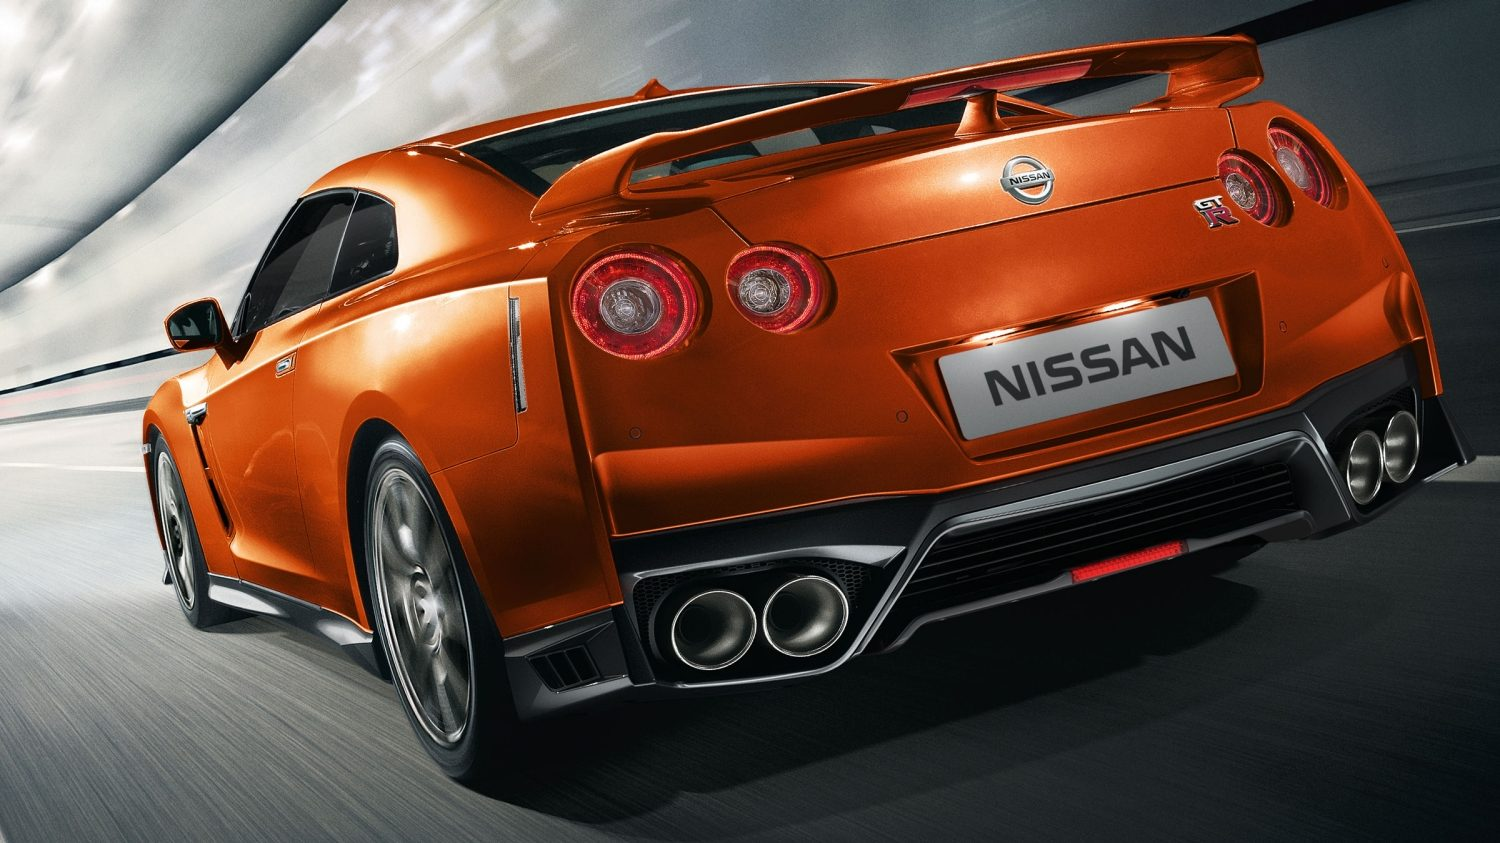 performances nouvelle nissan gt r voiture supercar nissan. Black Bedroom Furniture Sets. Home Design Ideas